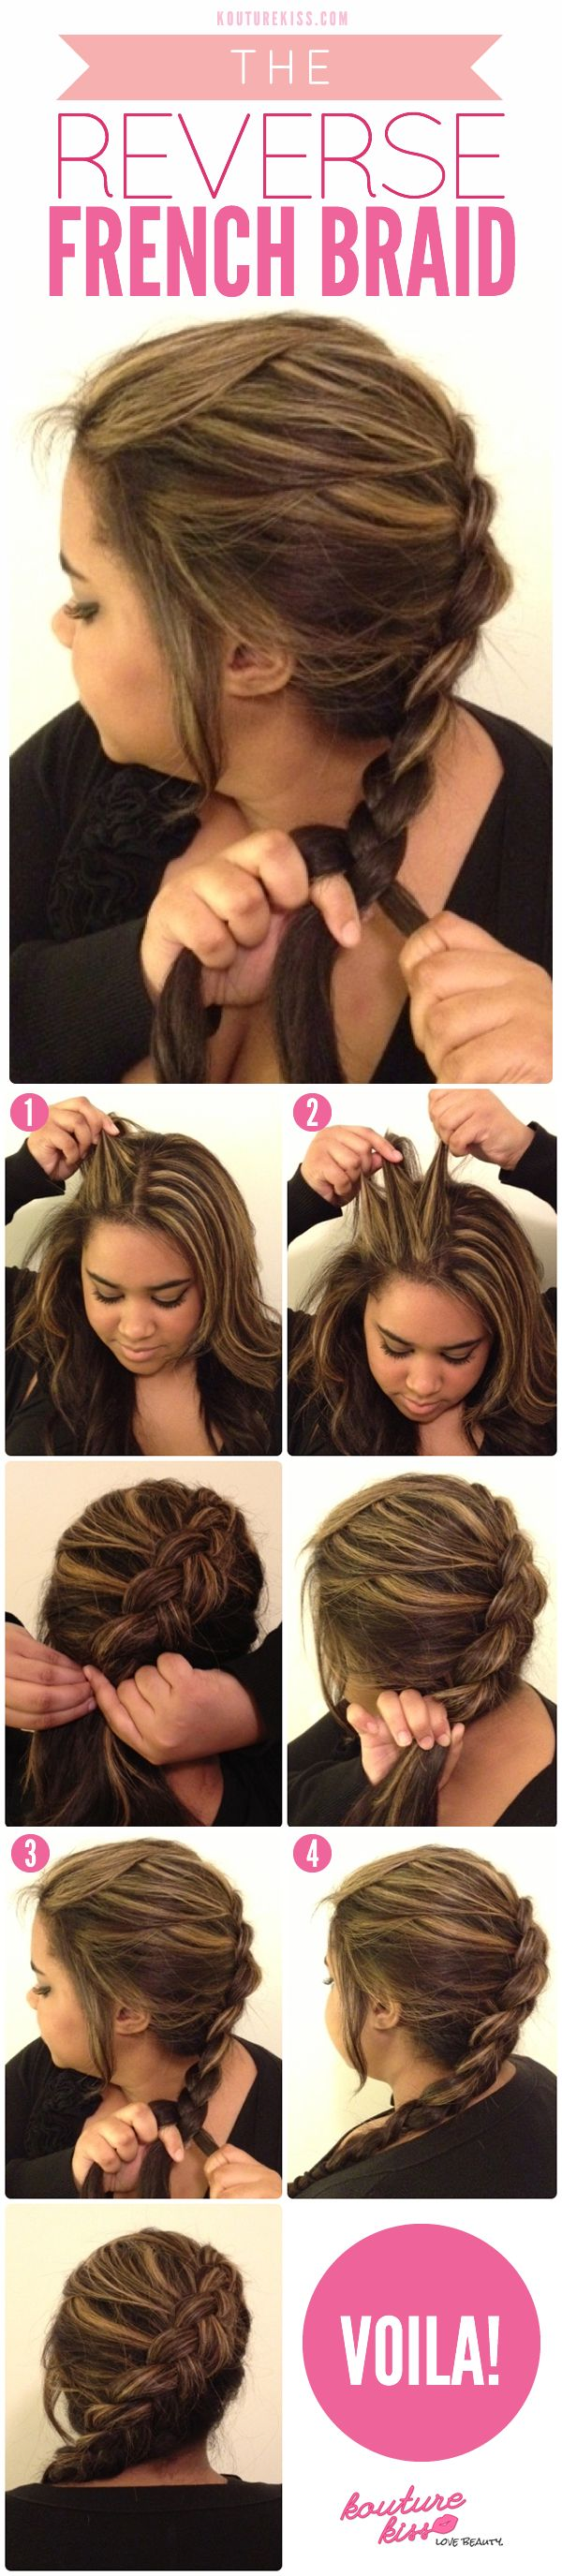 best braids u hairstyles images on pinterest hair beautiful